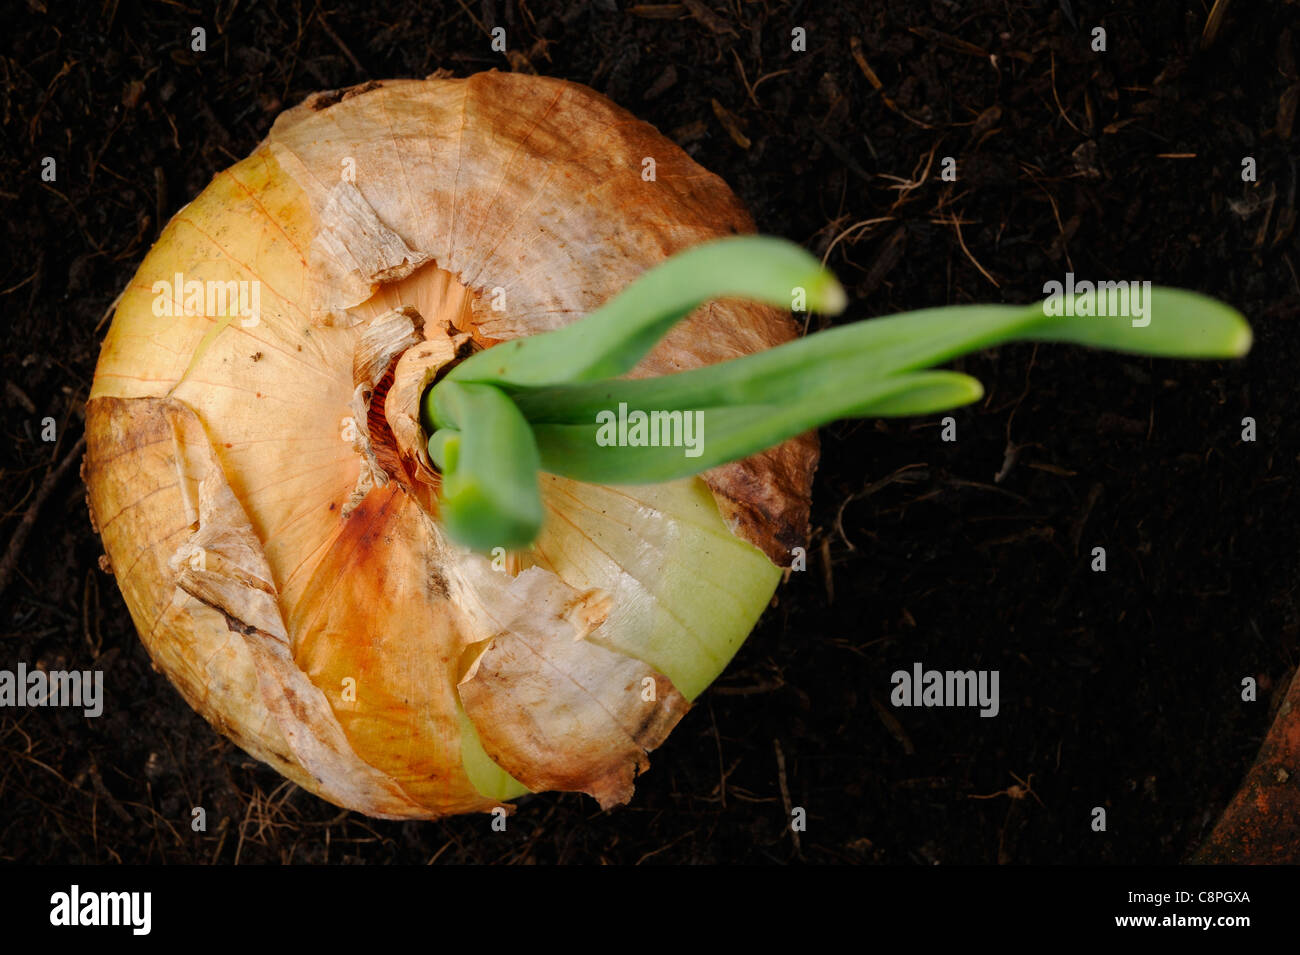 sprout onion bulb - Stock Image